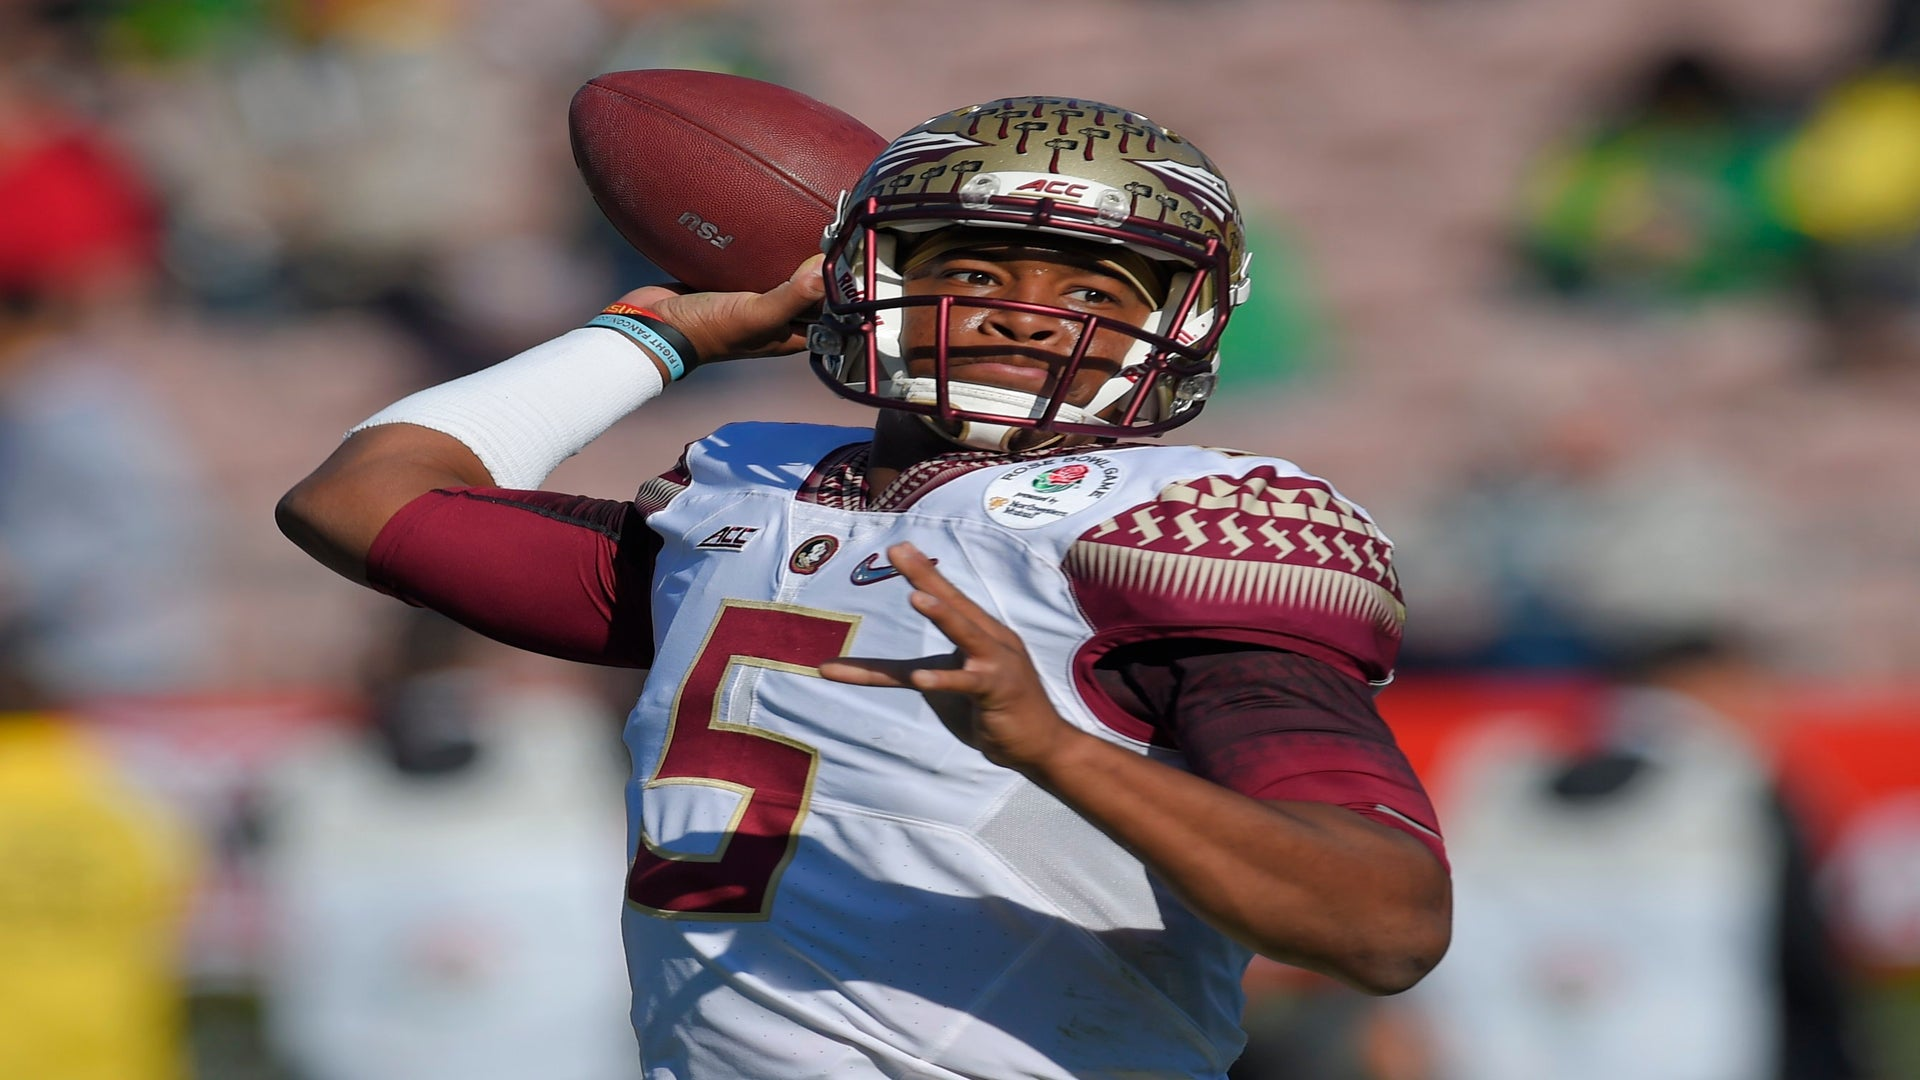 Jameis Winston Told 10-Year-Old Girls That Women Should Be 'Silent, Polite, Gentle'